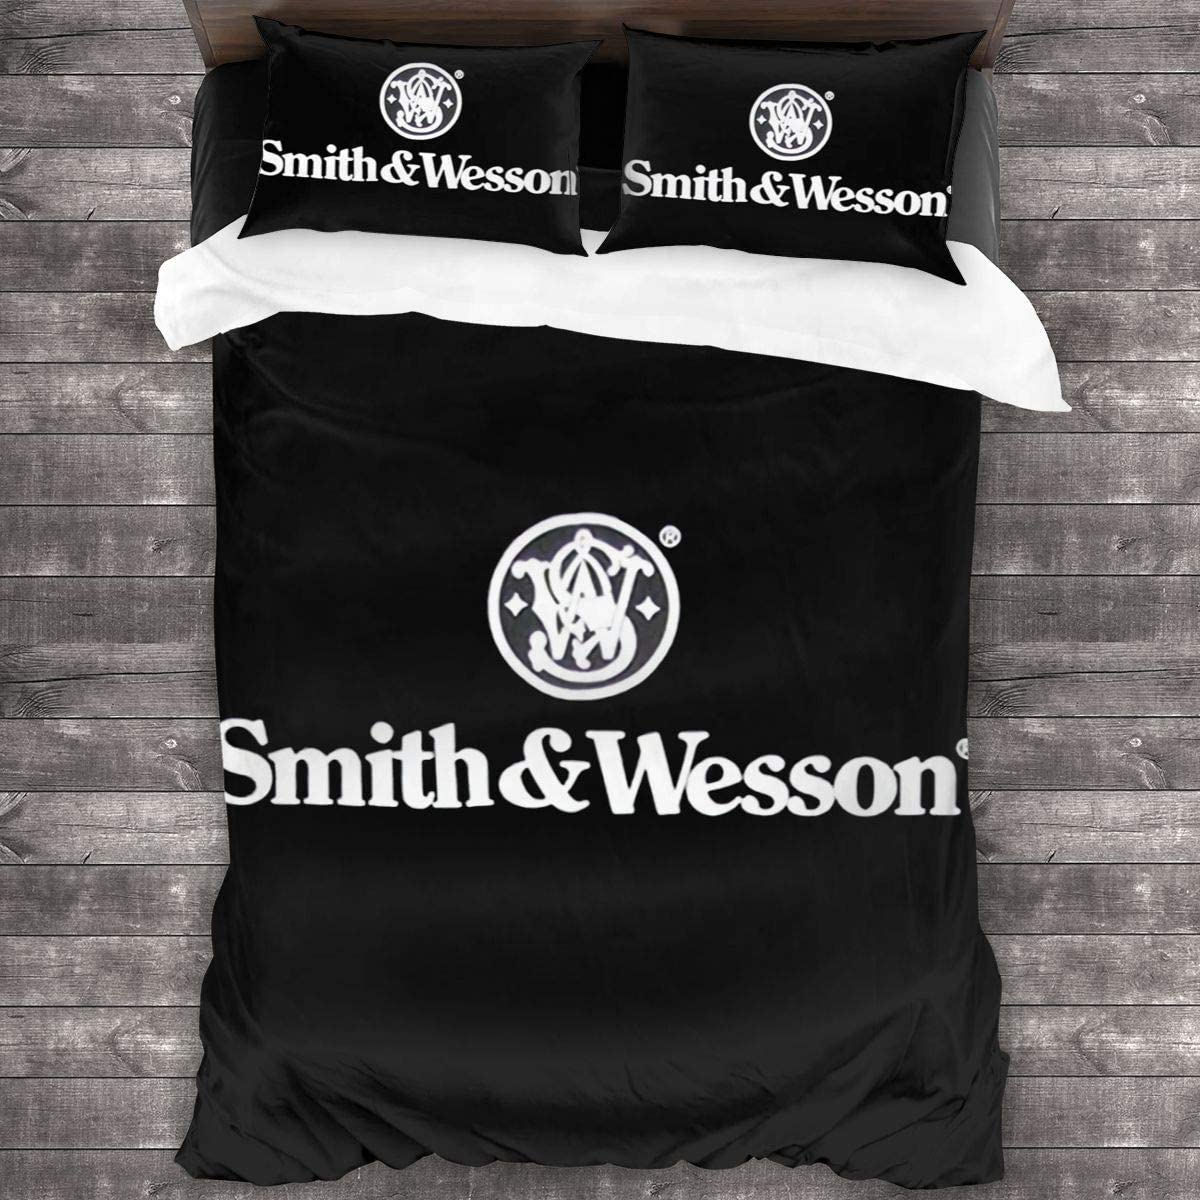 Smith & Wesson Sheet Cover-3 Piece Set-Hotel Luxury Bed Sheet-Extra Soft-Deep Pocket-Easy to Install-Breathable and Cooling Sheets-No Wrinkles-Comfortable.